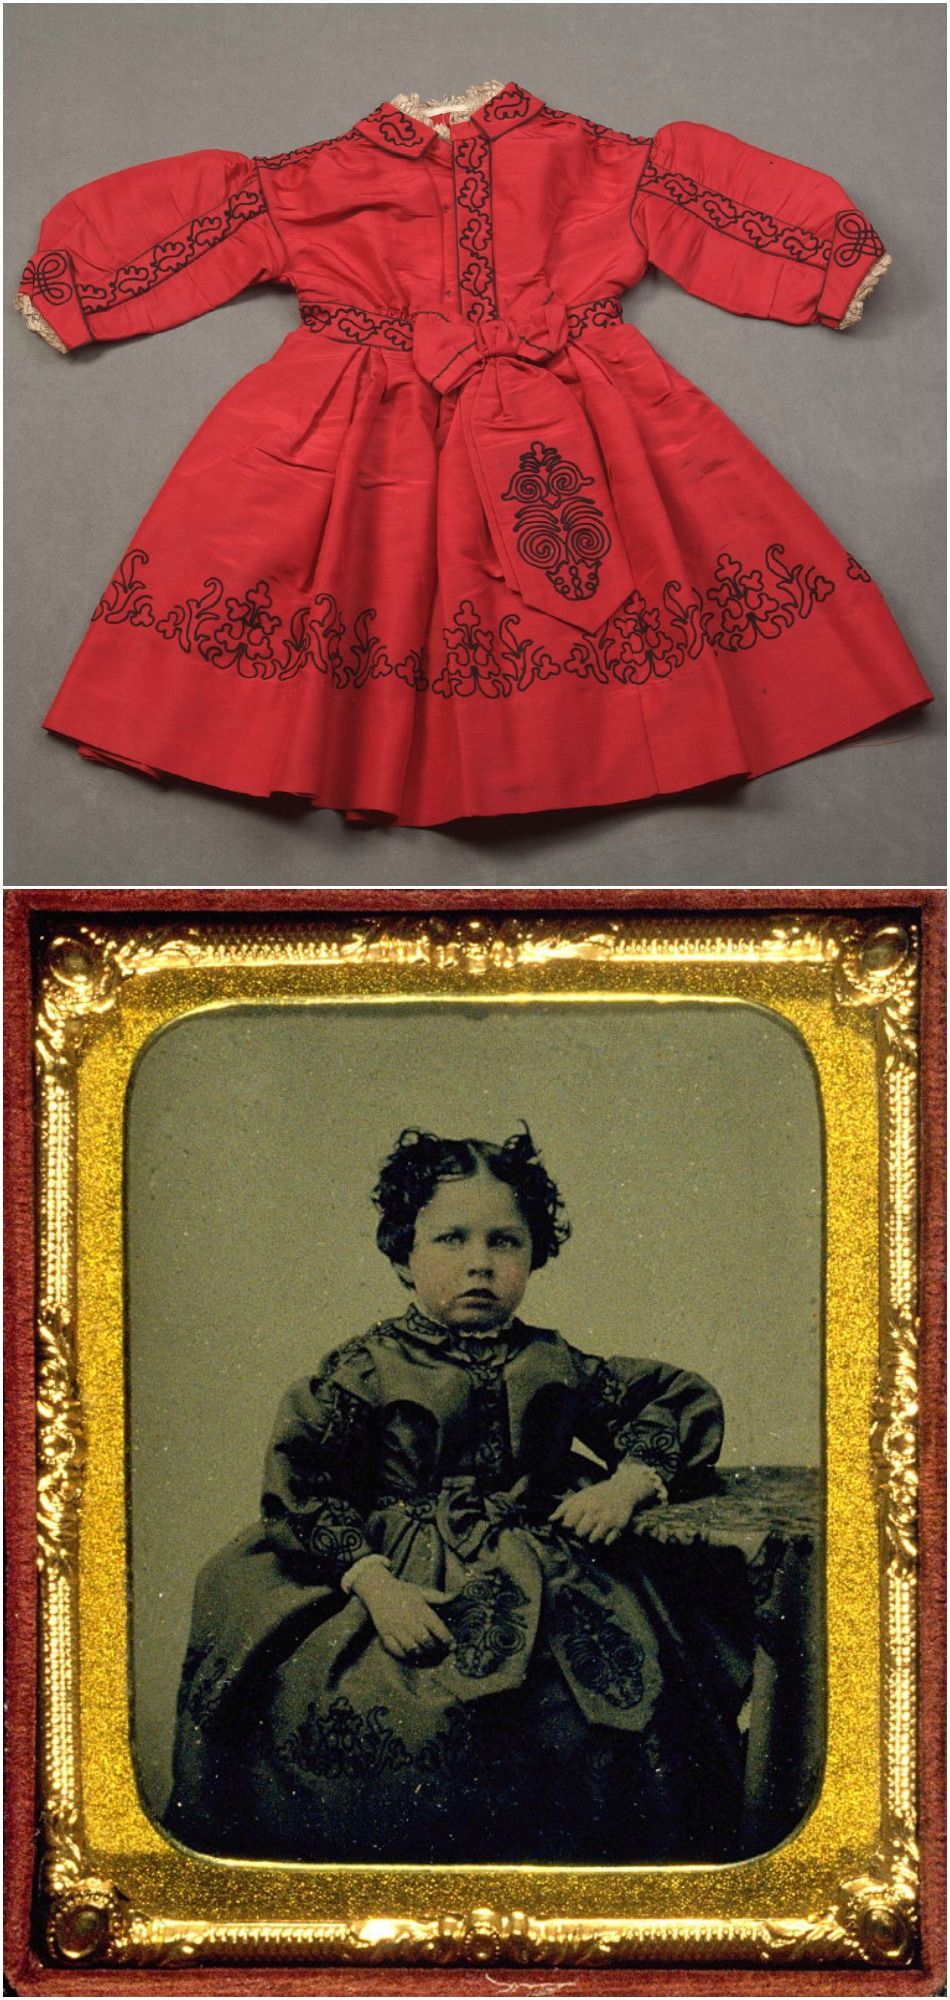 Top: Child's dress, 1865. Bottom: Portrait of Emily Tucker at age four, 1864, wearing the same dress. De Young Museum.